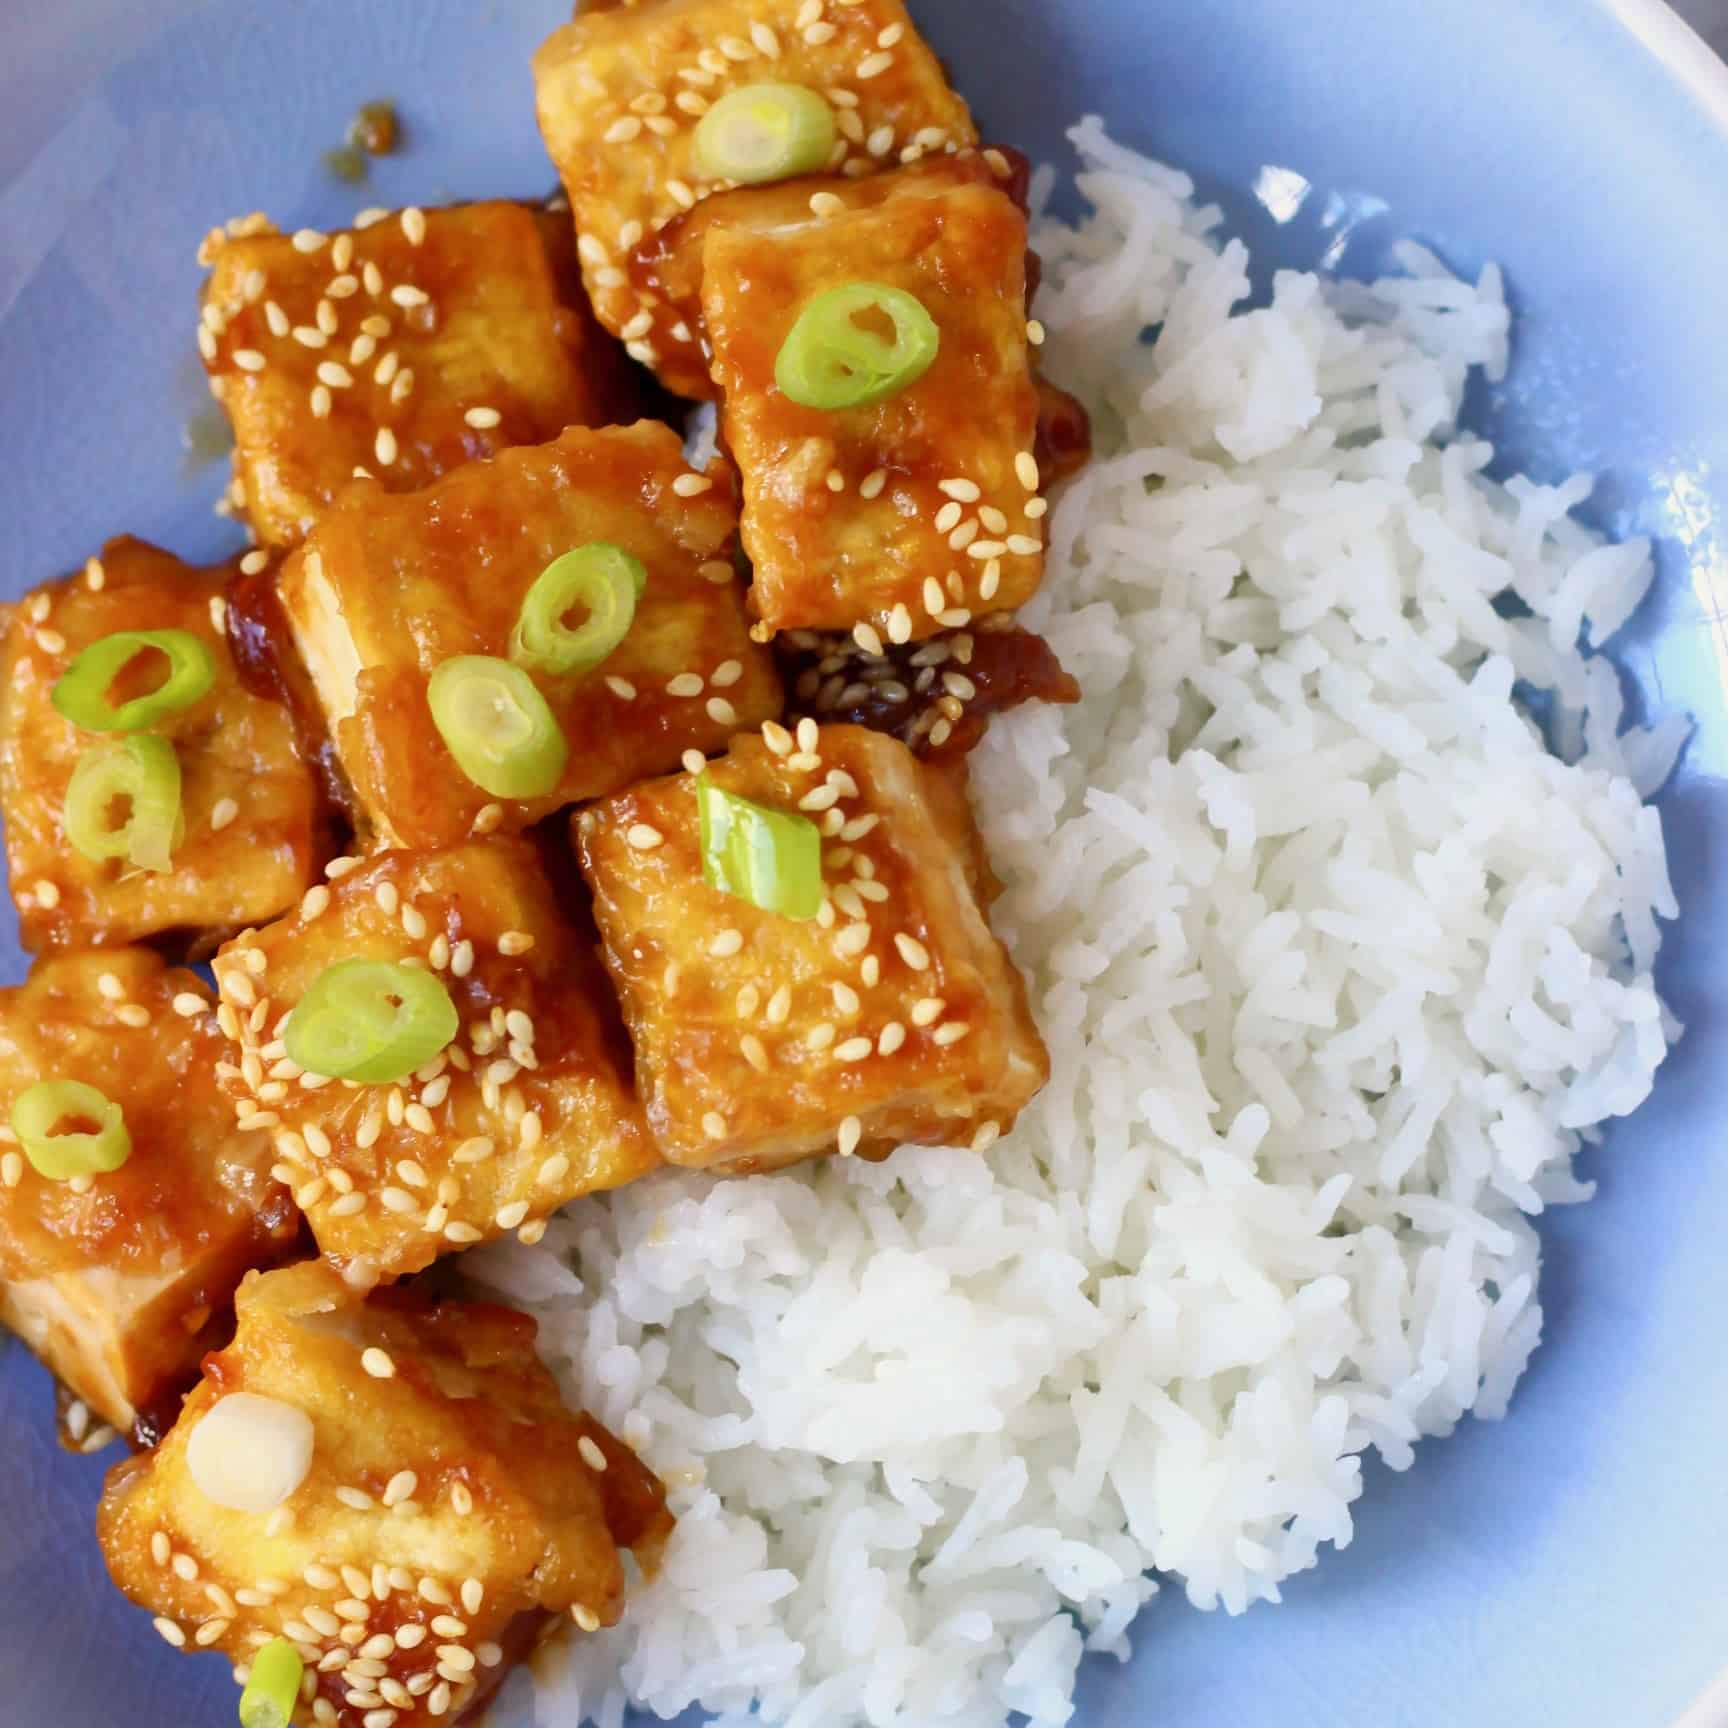 Photo of rice and several pieces of fried tofu sprinkled with sesame seeds and sliced spring onions on a blue plate